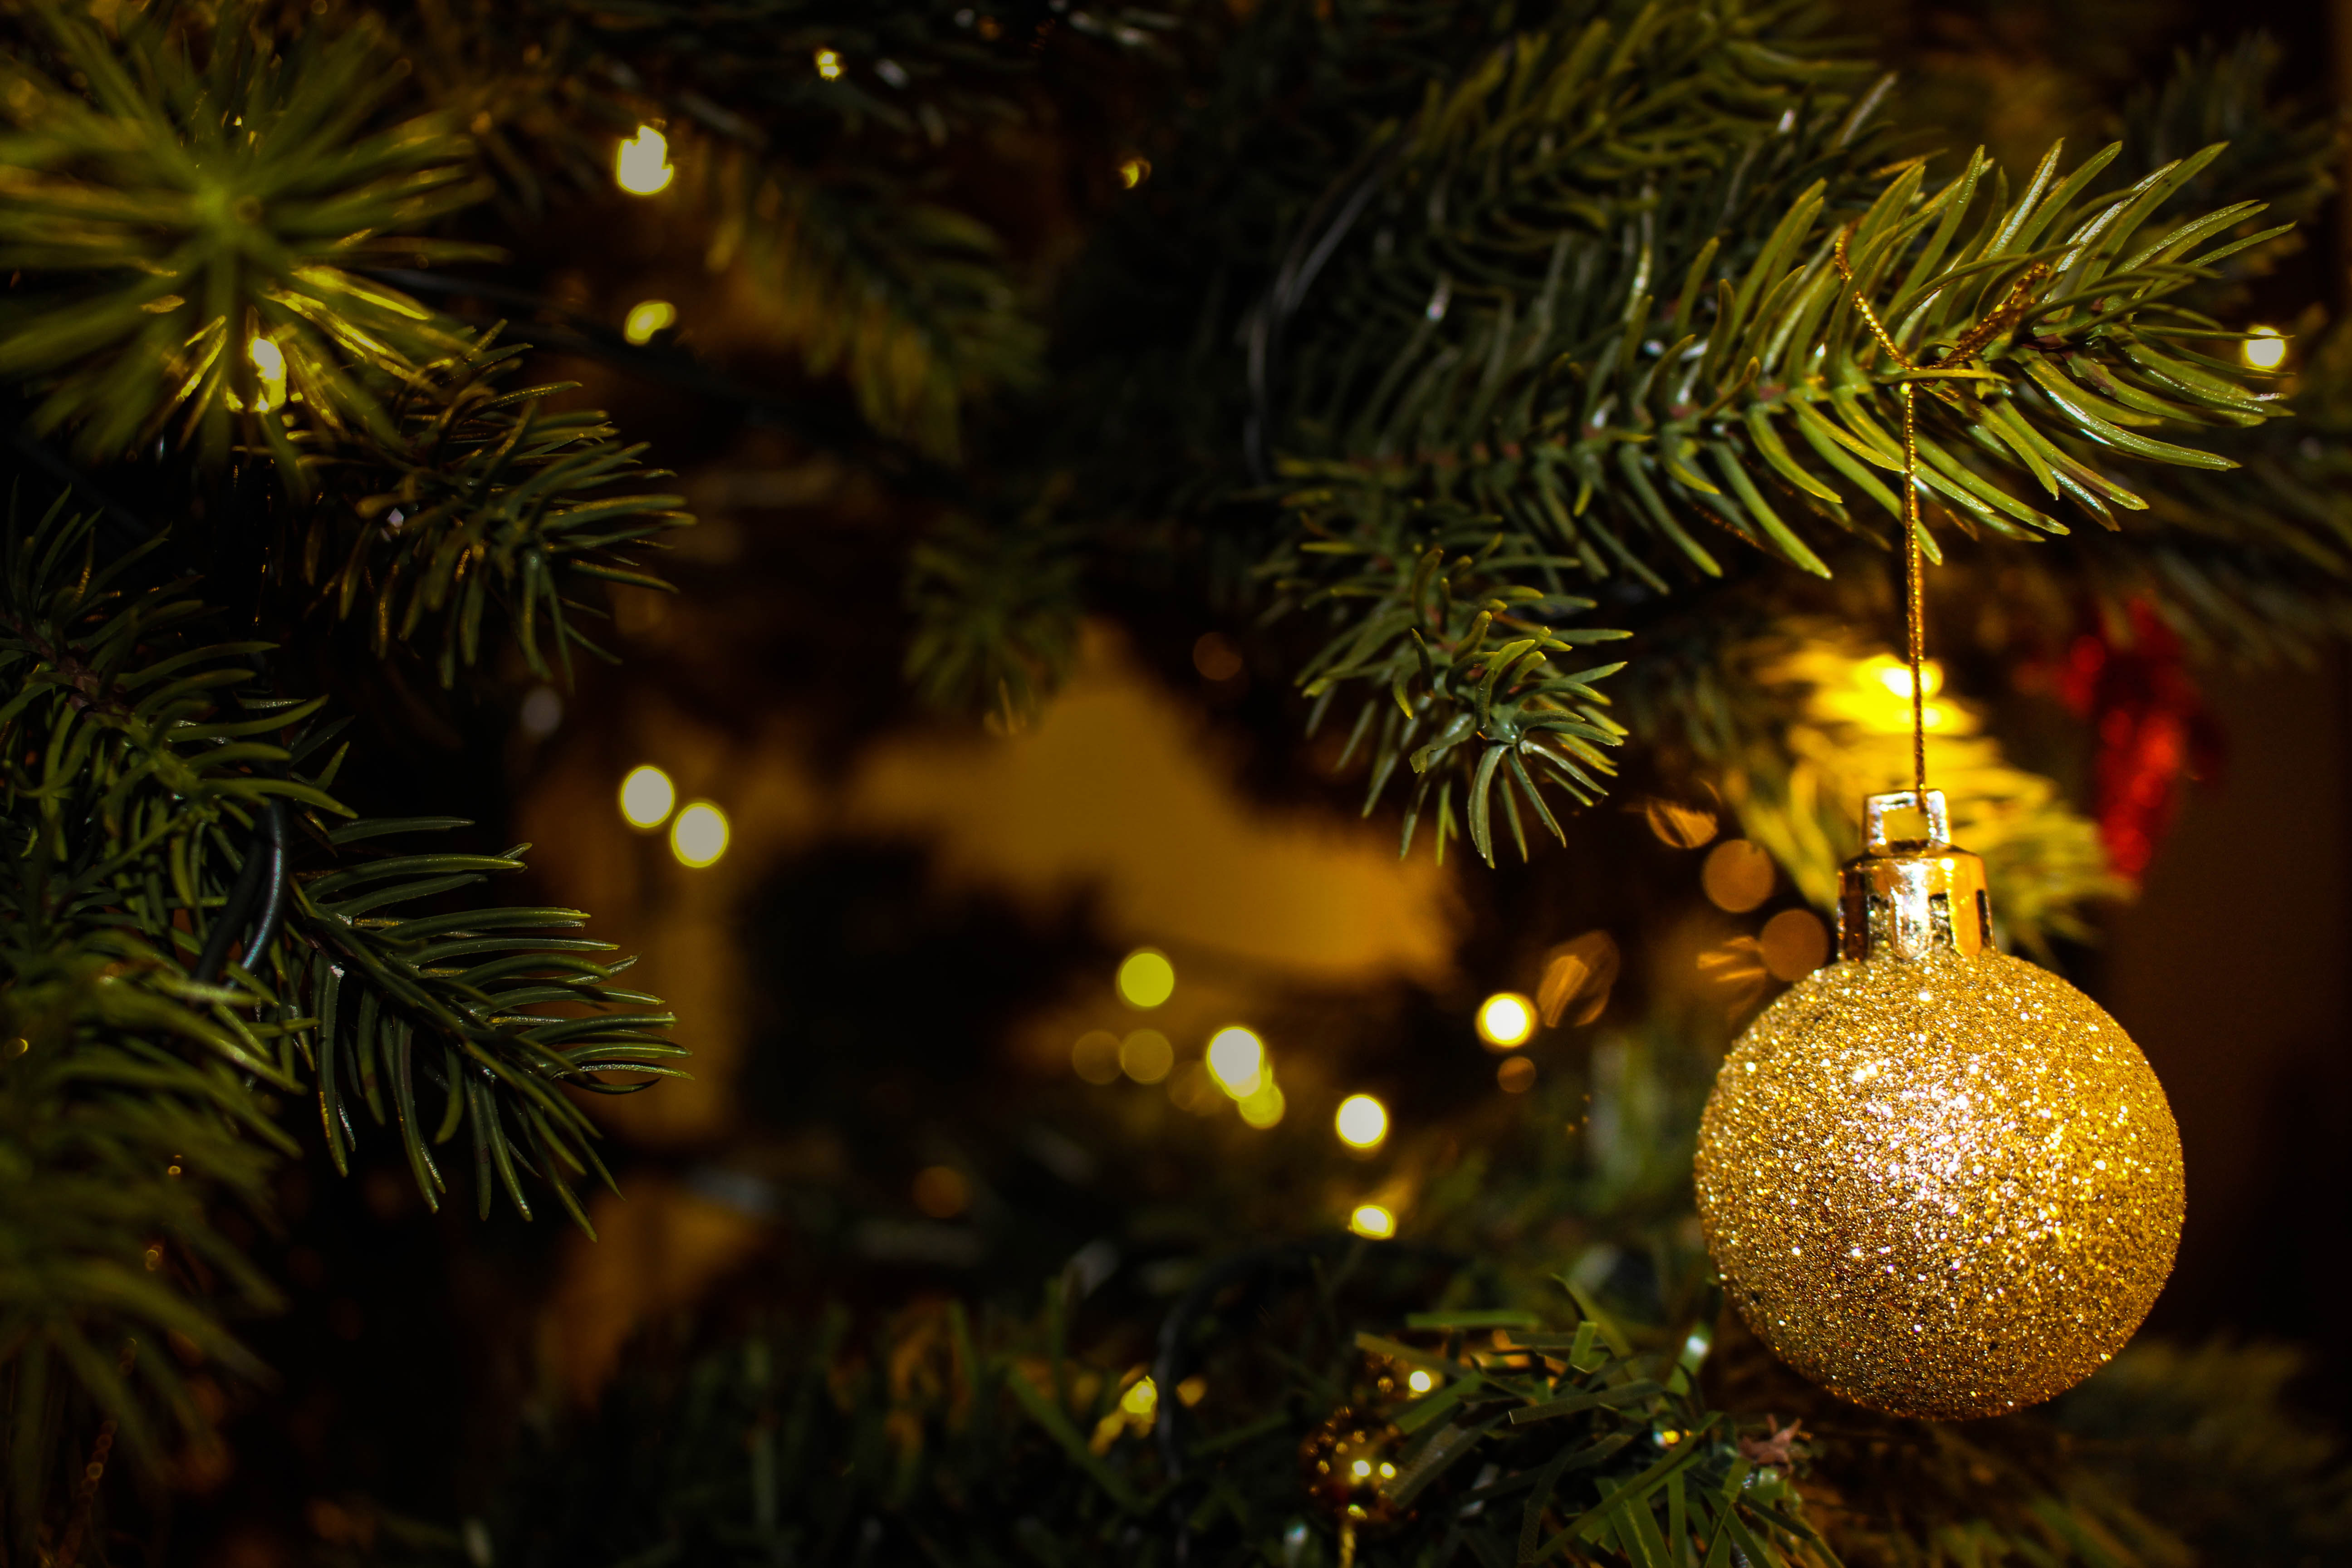 Golden Tree Christmas Ornament image - Free stock photo ...